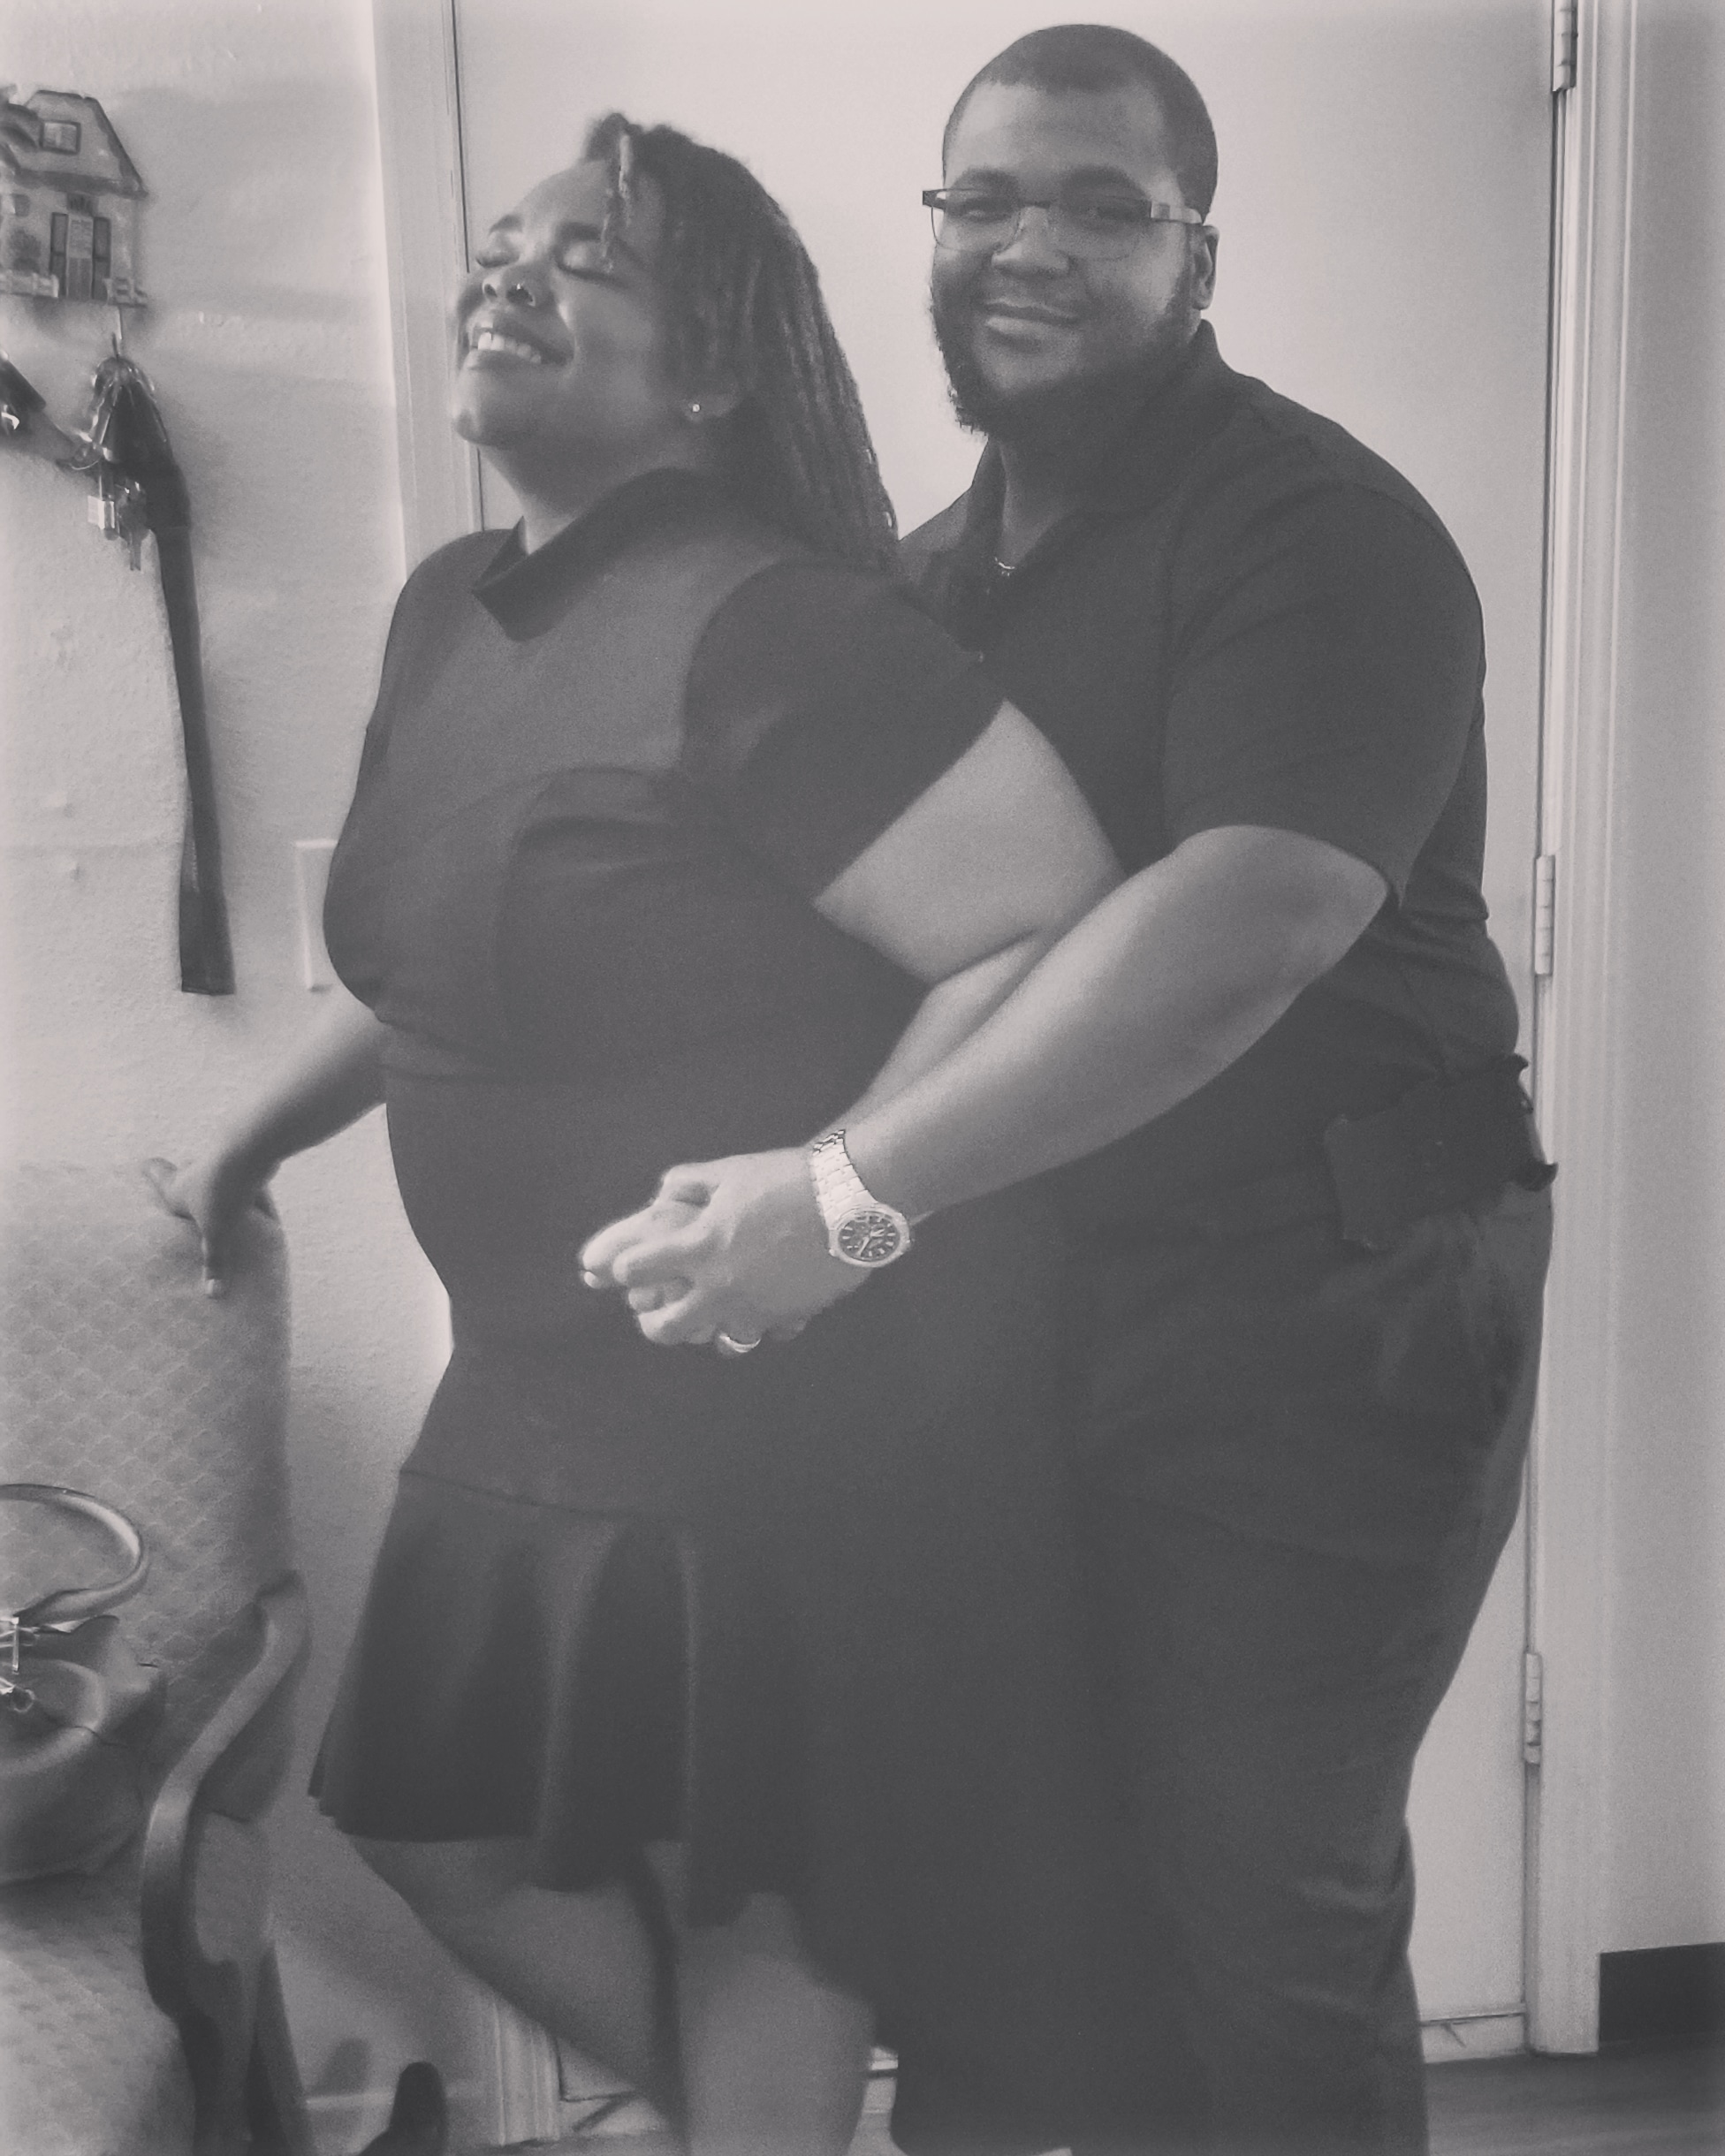 Us on our 2nd wedding Anniversary.